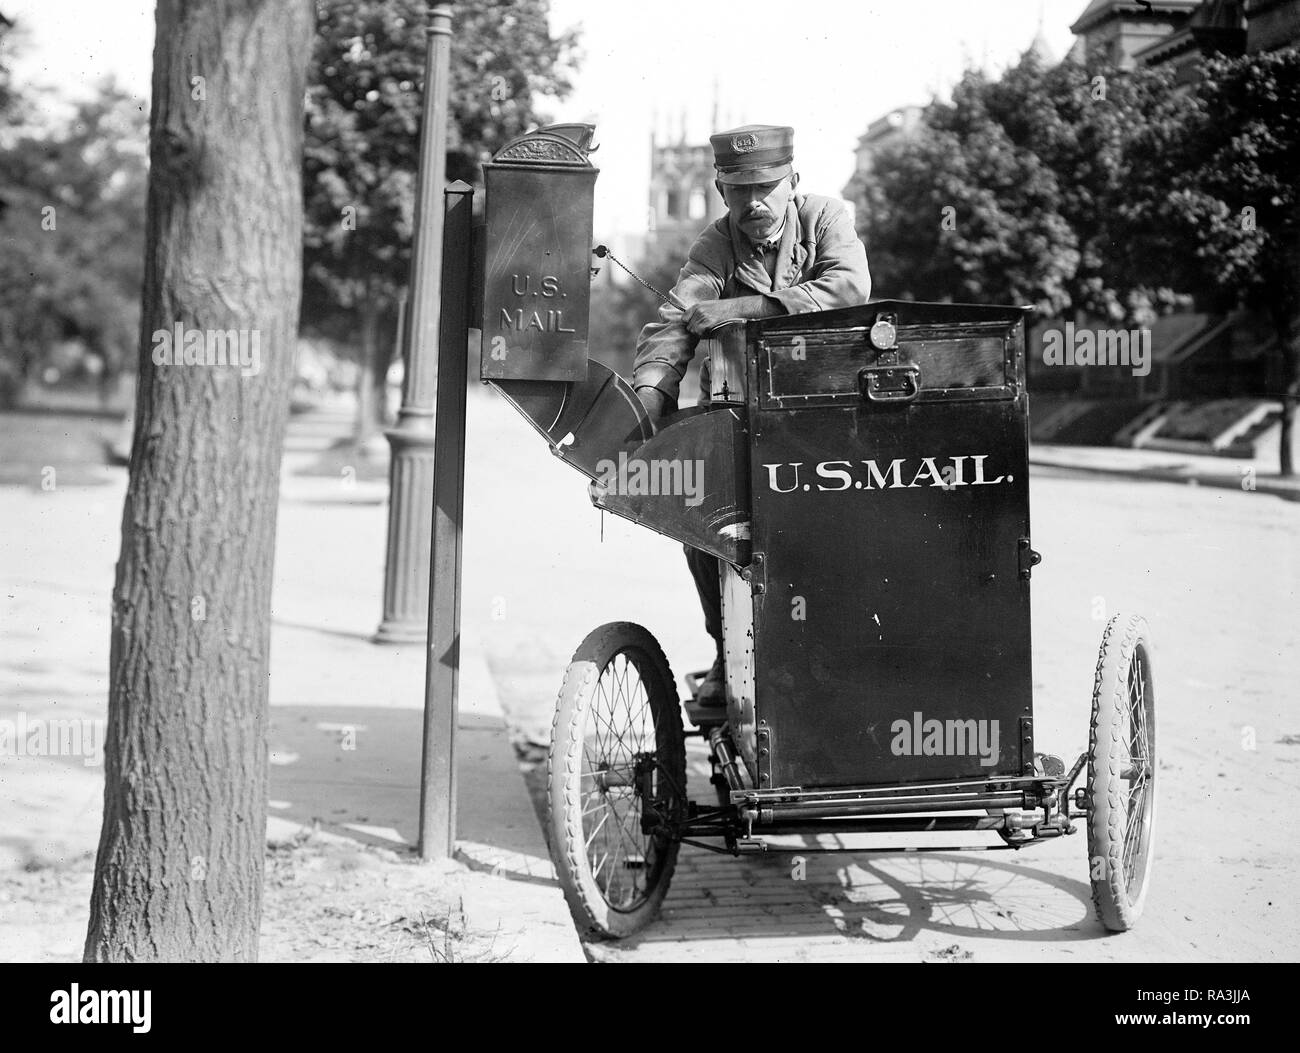 Motorcycle Delivery Service Stock Photos Amp Motorcycle